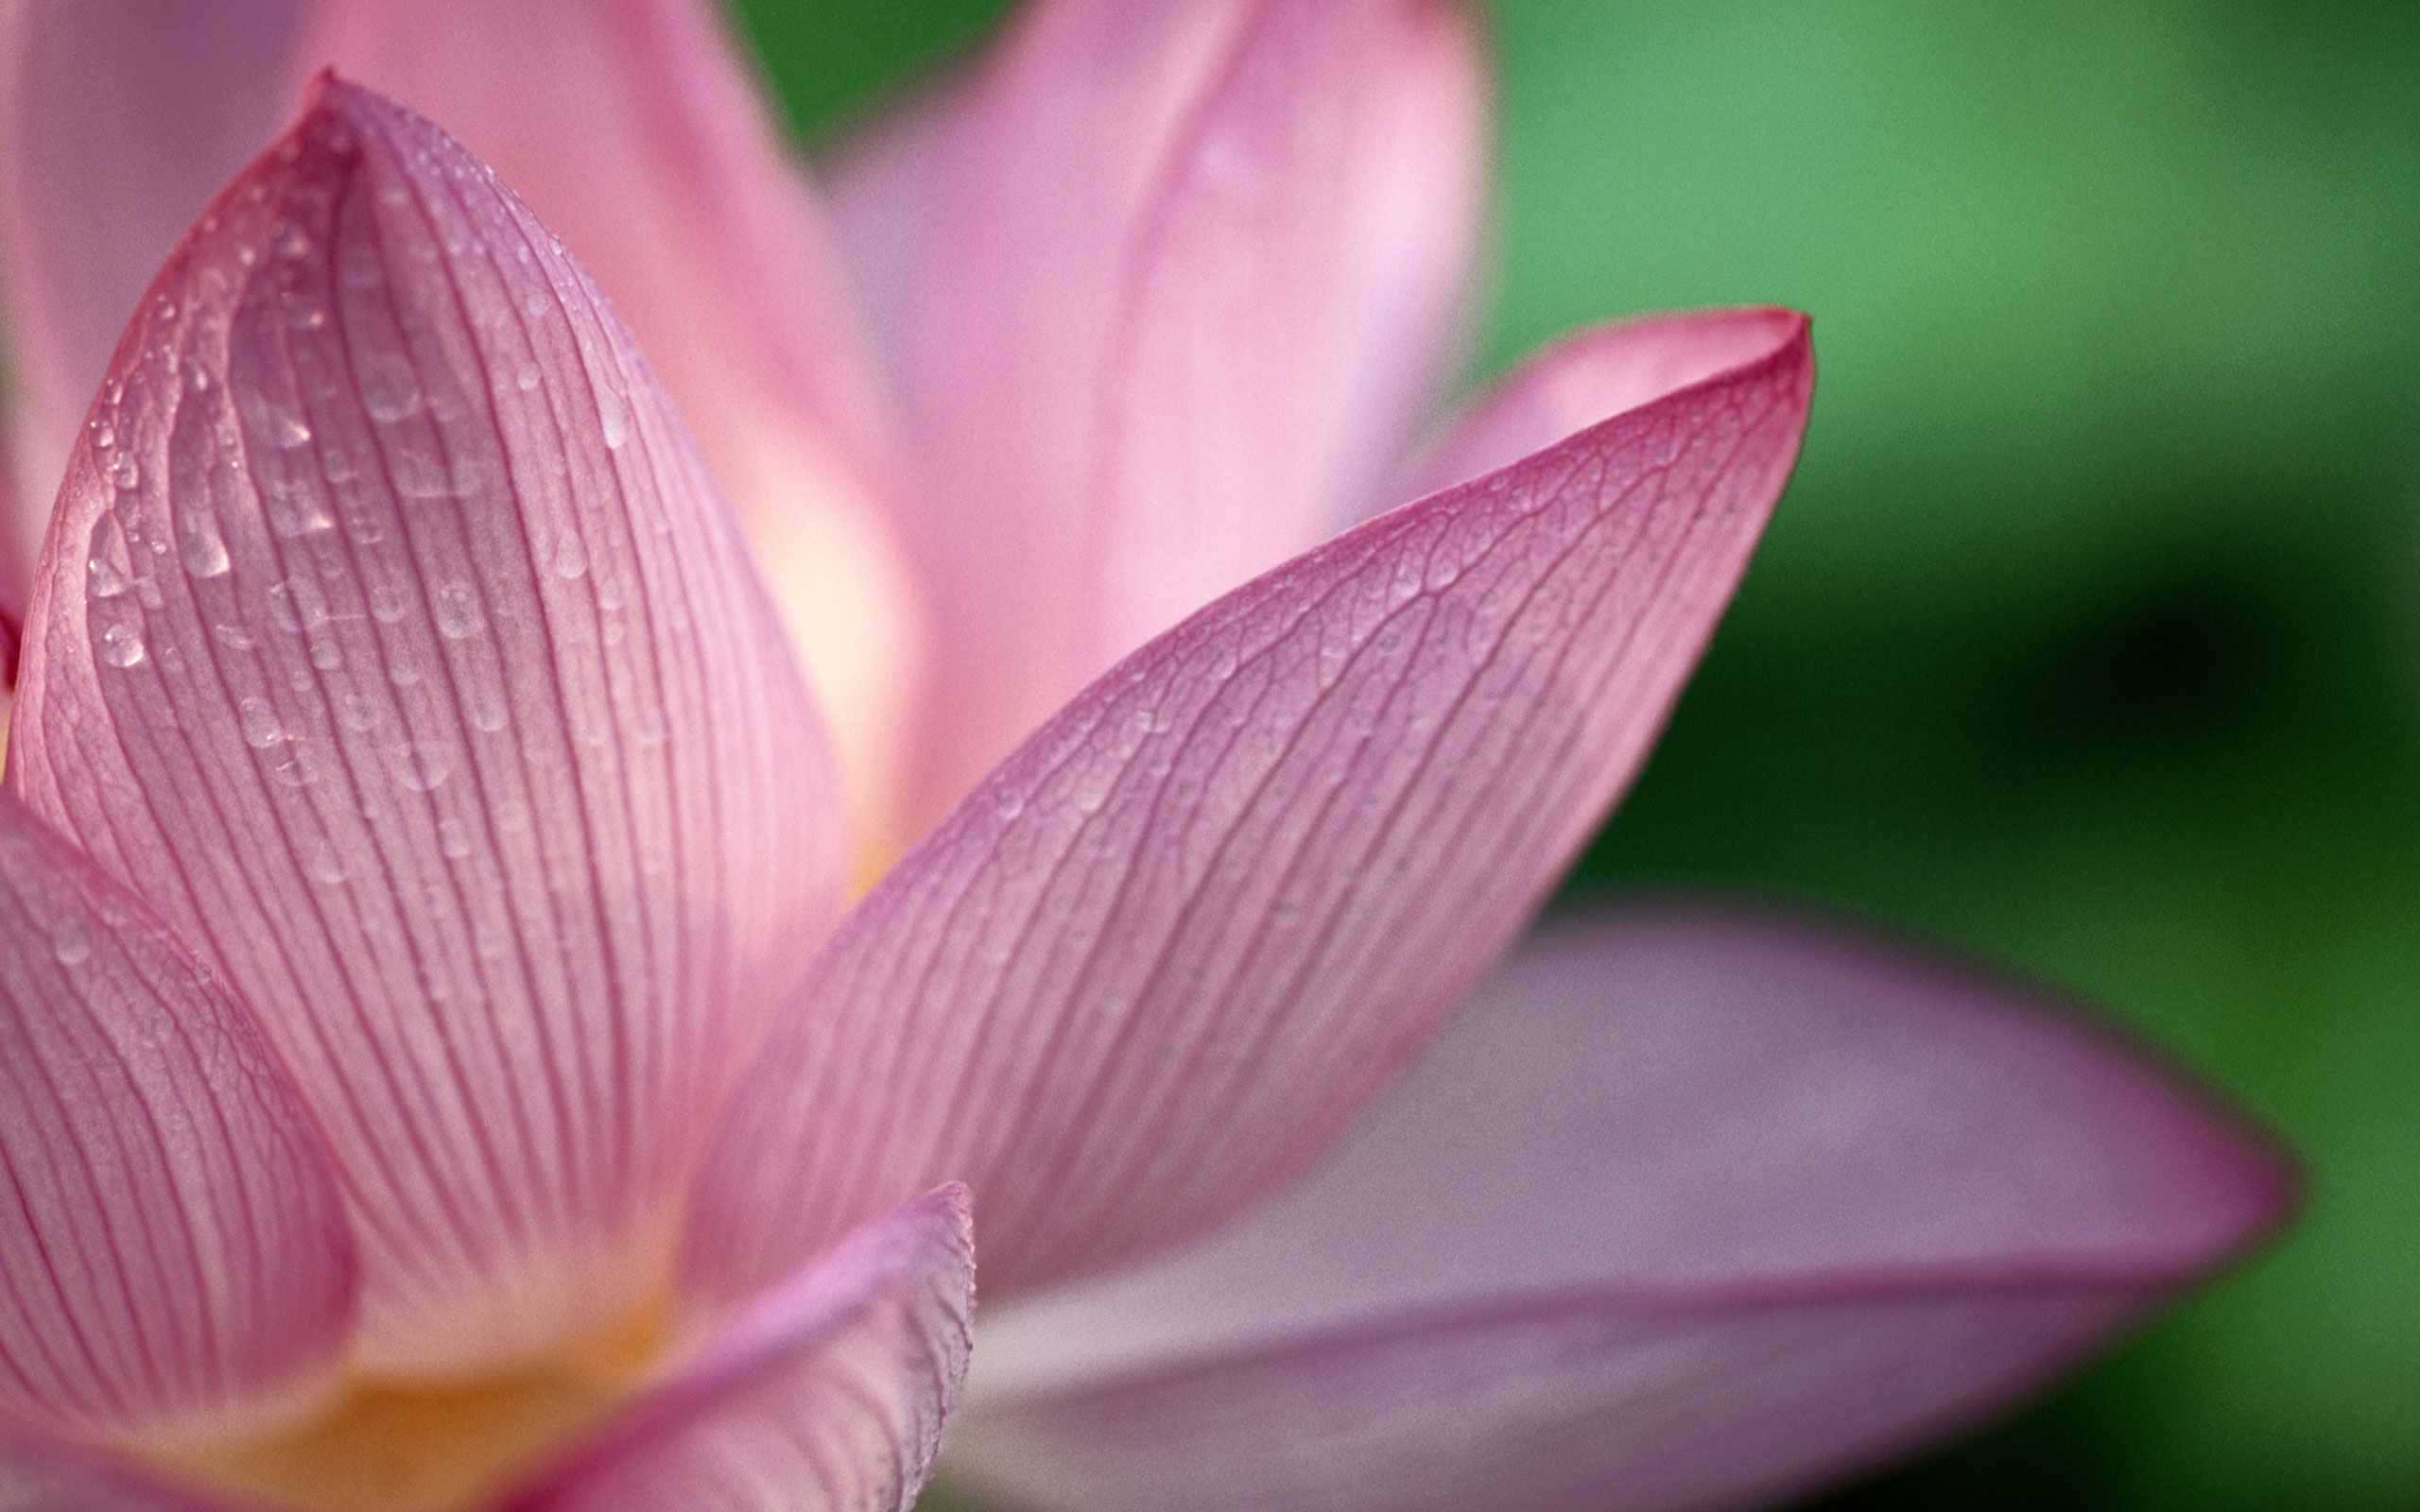 lotus flower high resolution wallpapers lovely desktop background images widescreen